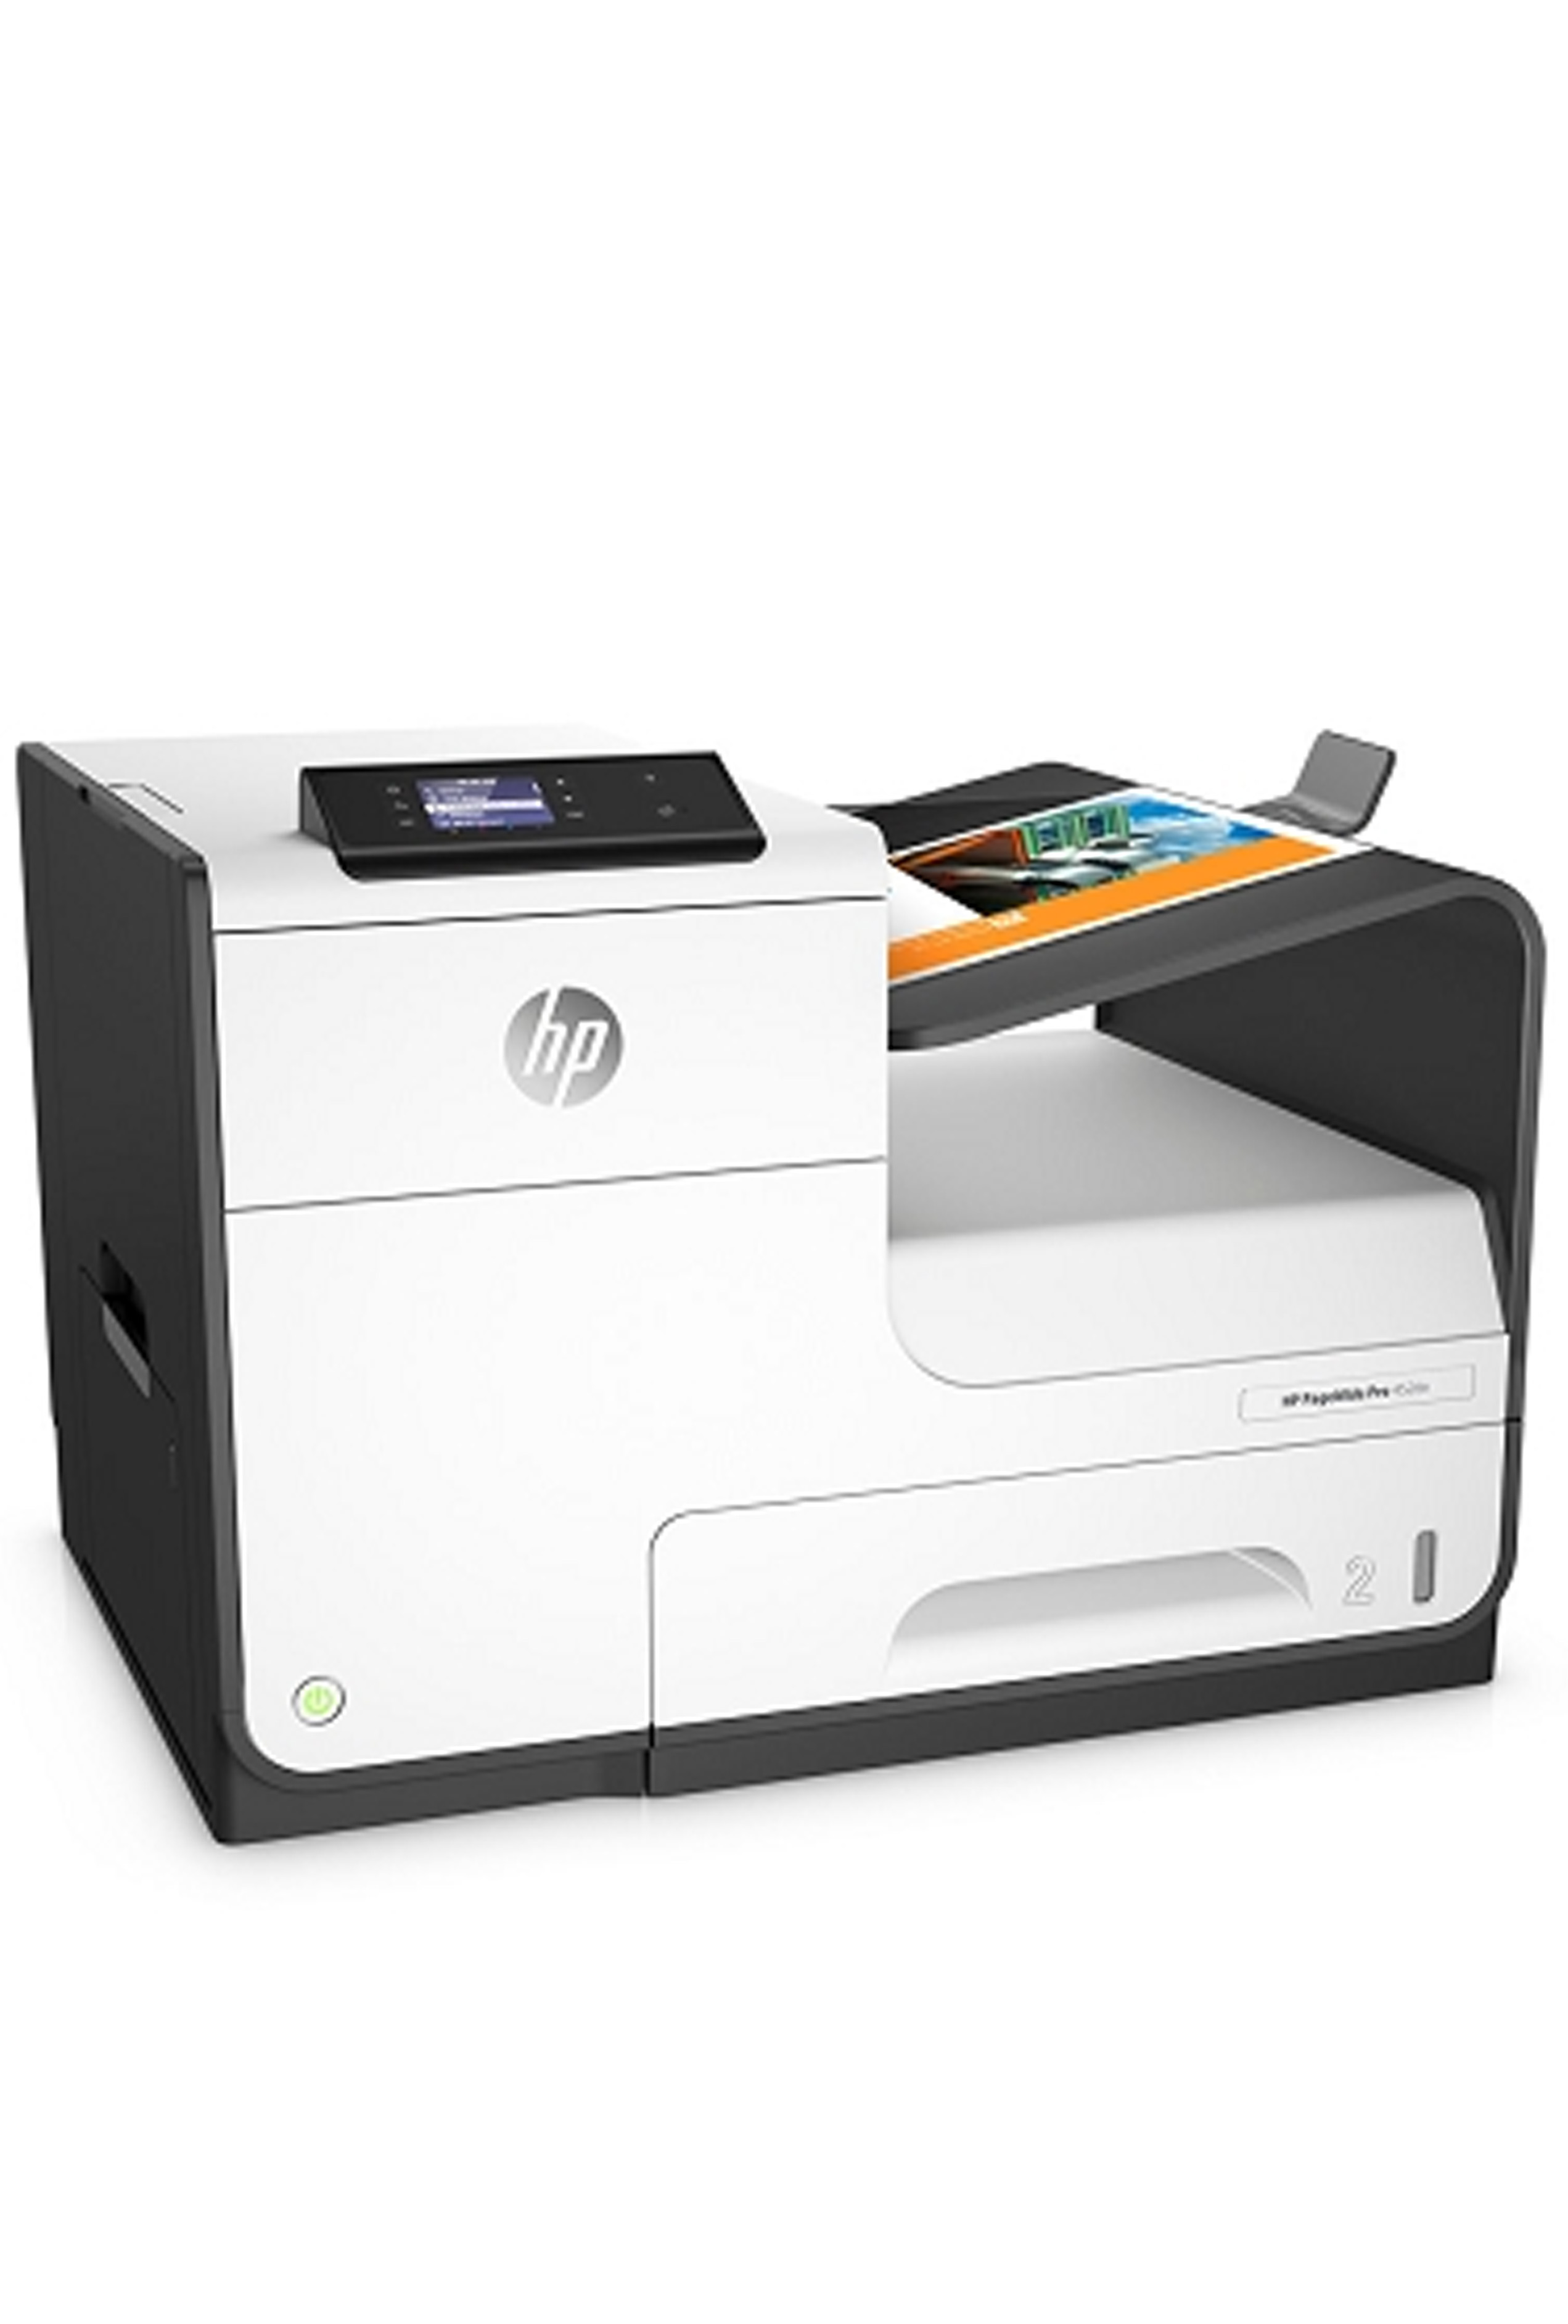 HP Black and White PageWide Pro 452dn 40ppm/ 40ppm Printer